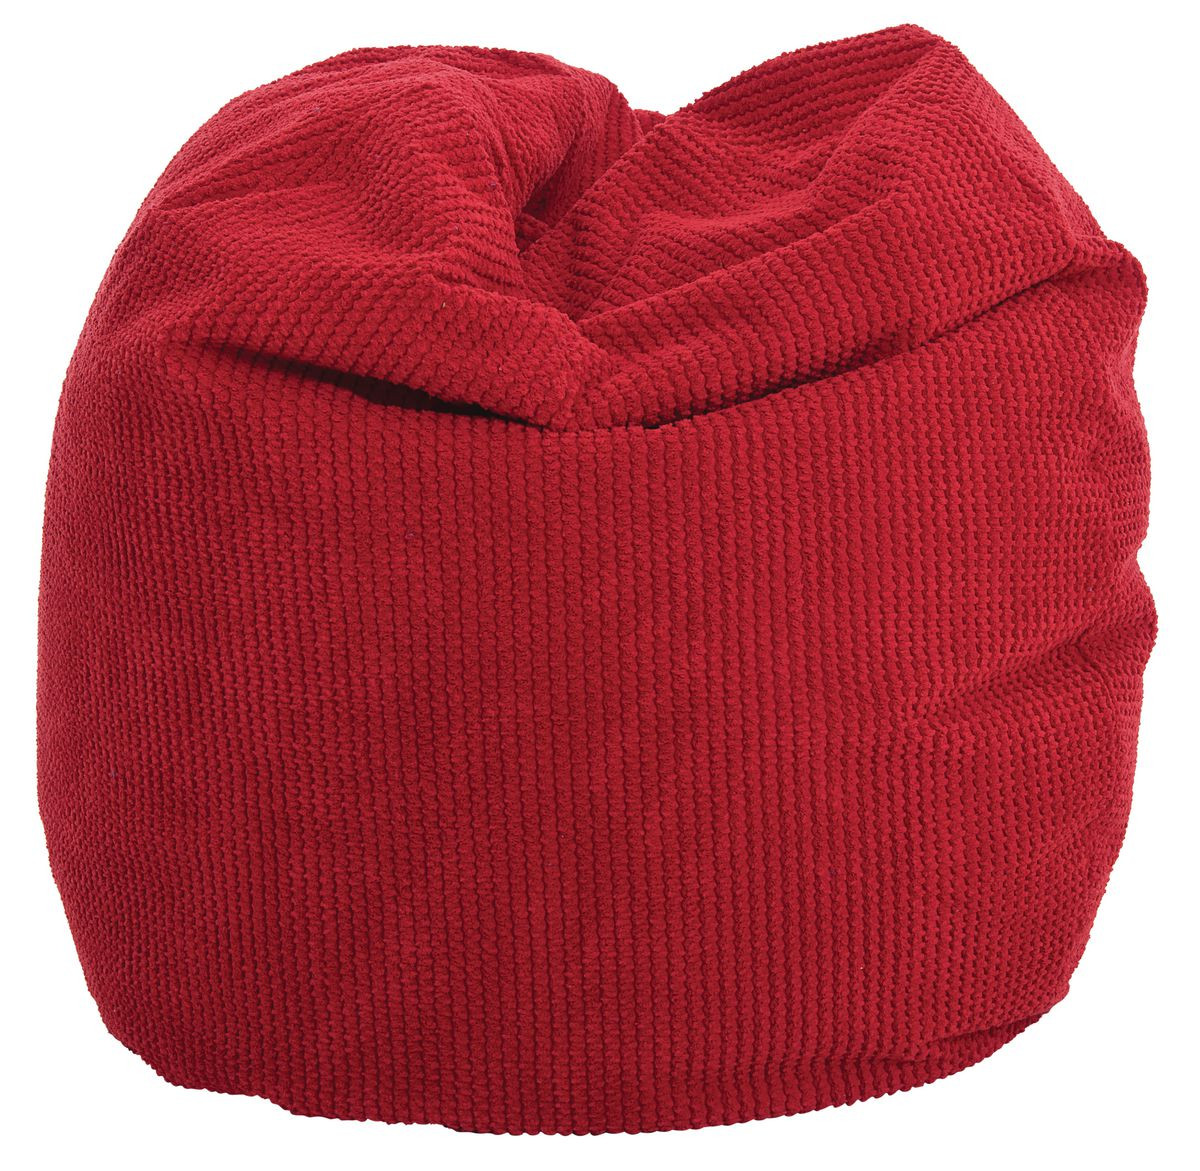 Adult Cord Bean Bags Gresswell Specialist Resources For